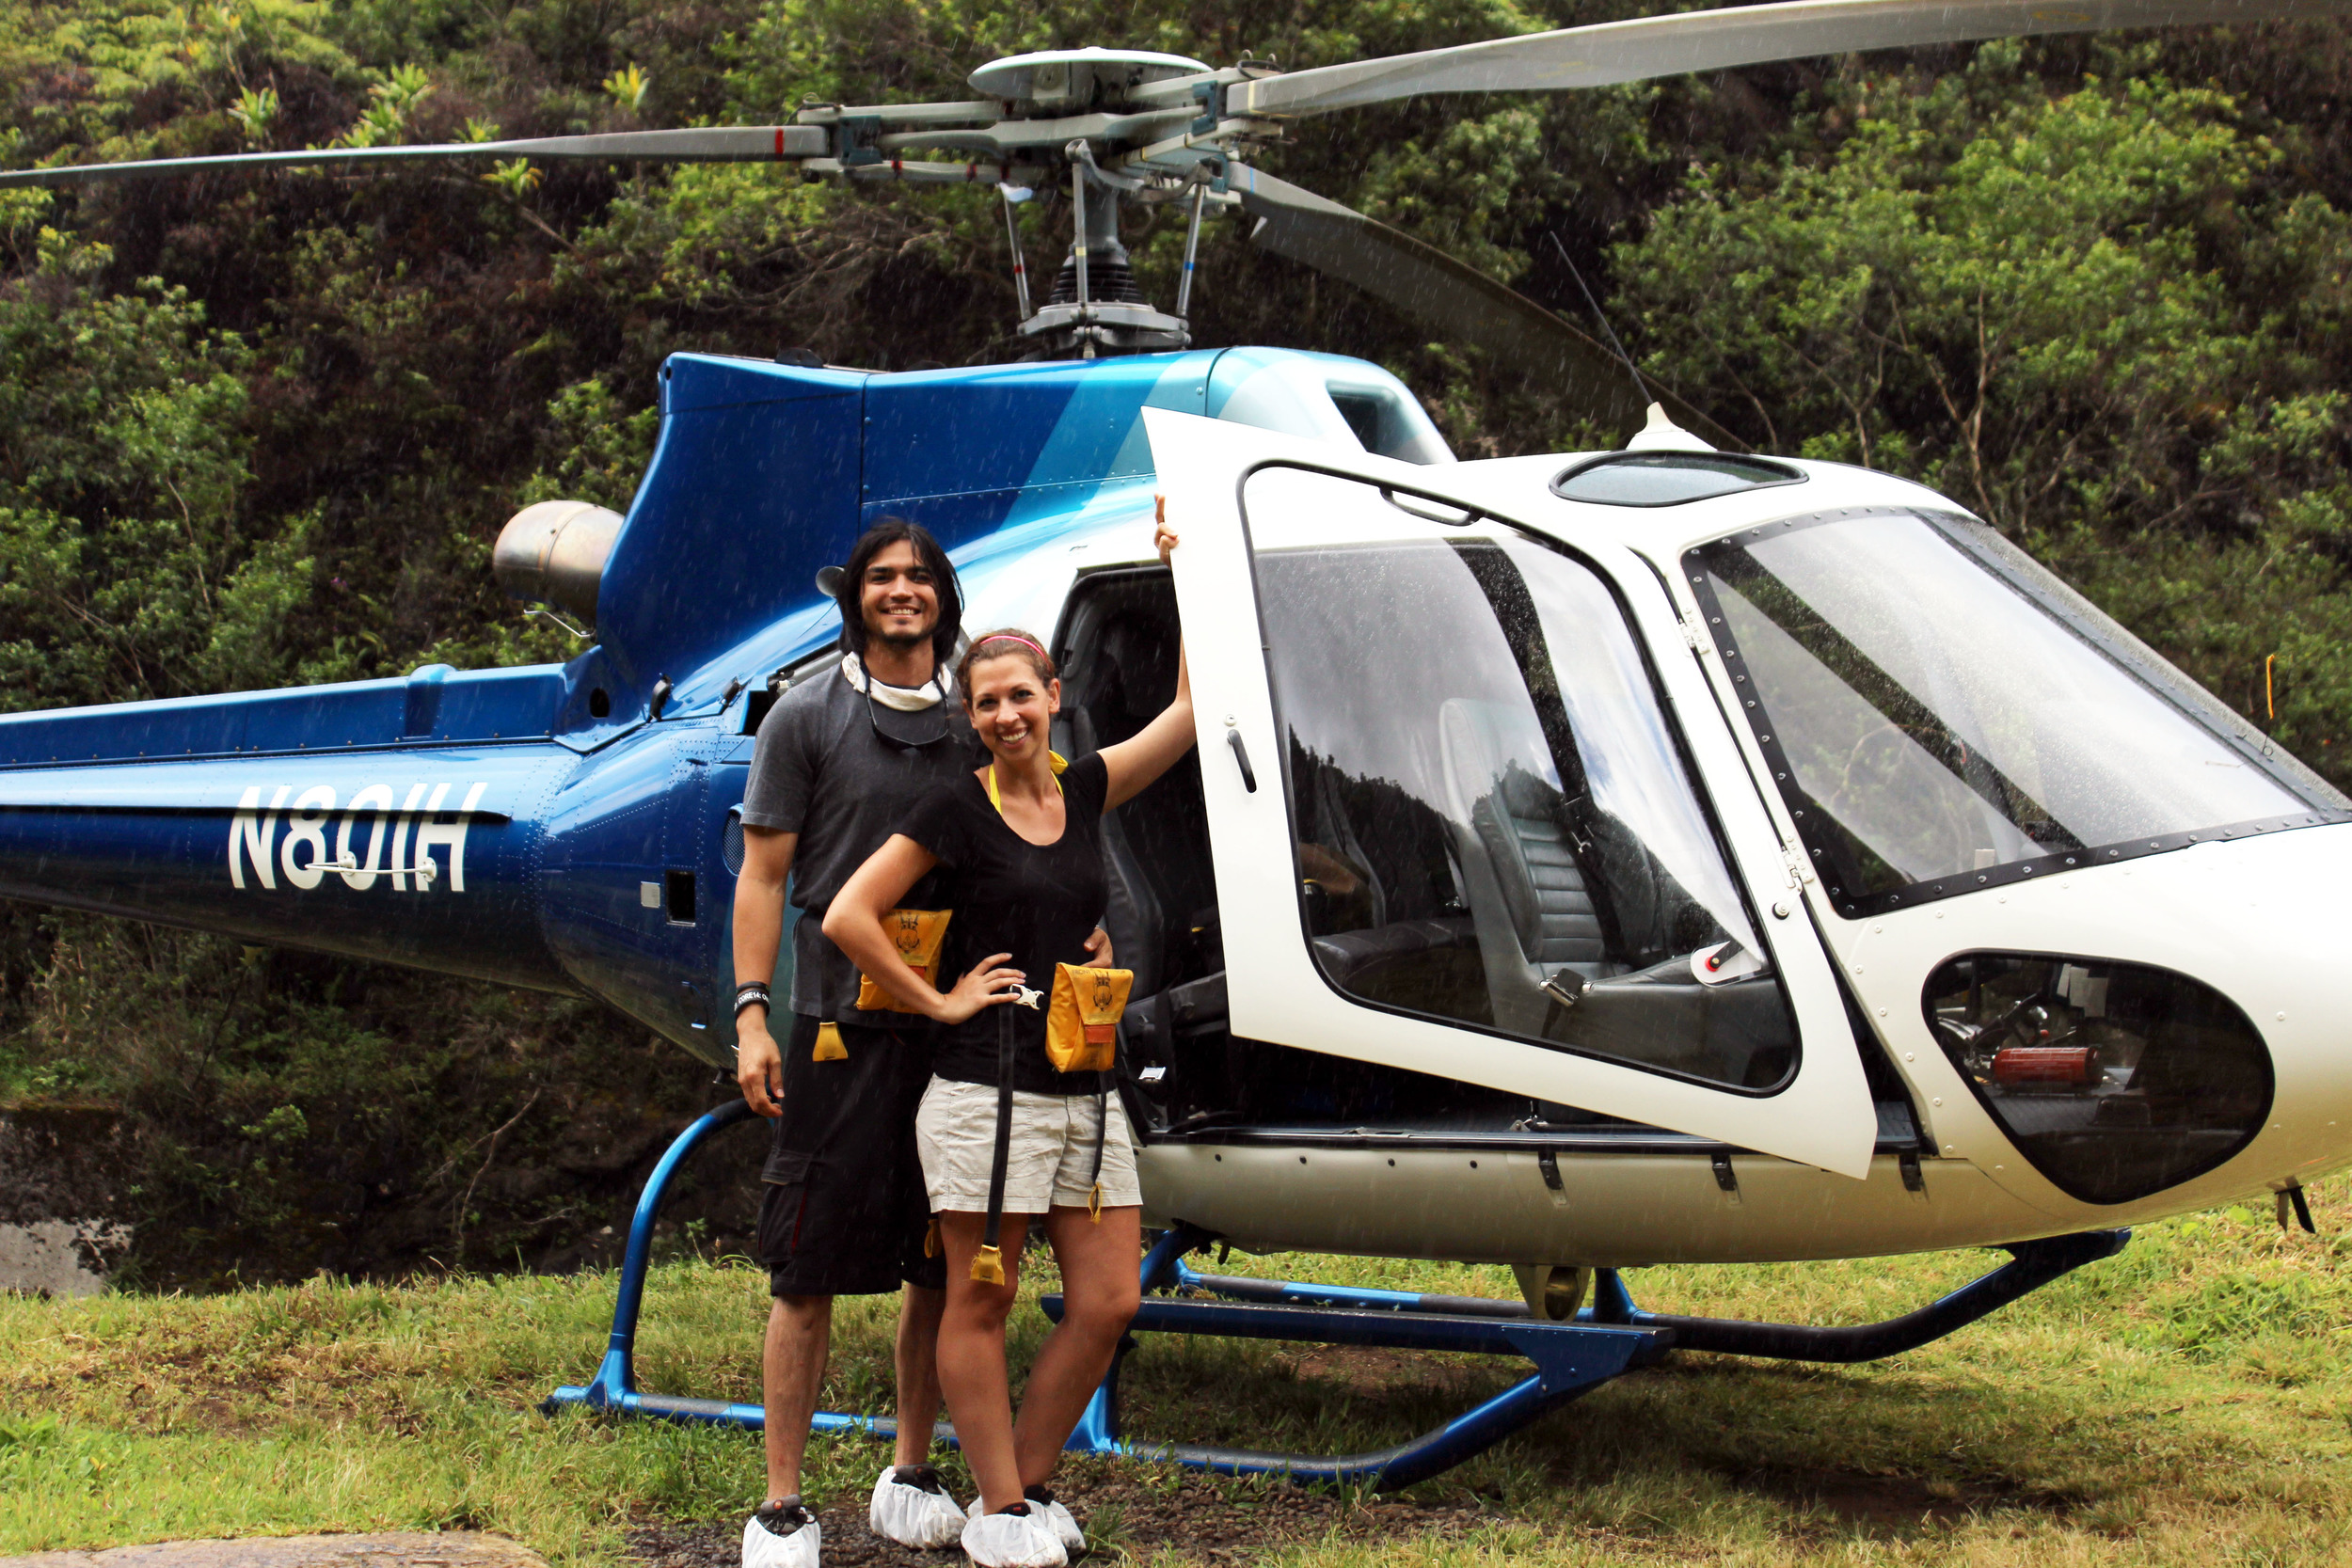 Jurassic Falls Tour with Island Helicopters in Kauai, Hawaii // via Jitney's Journeys